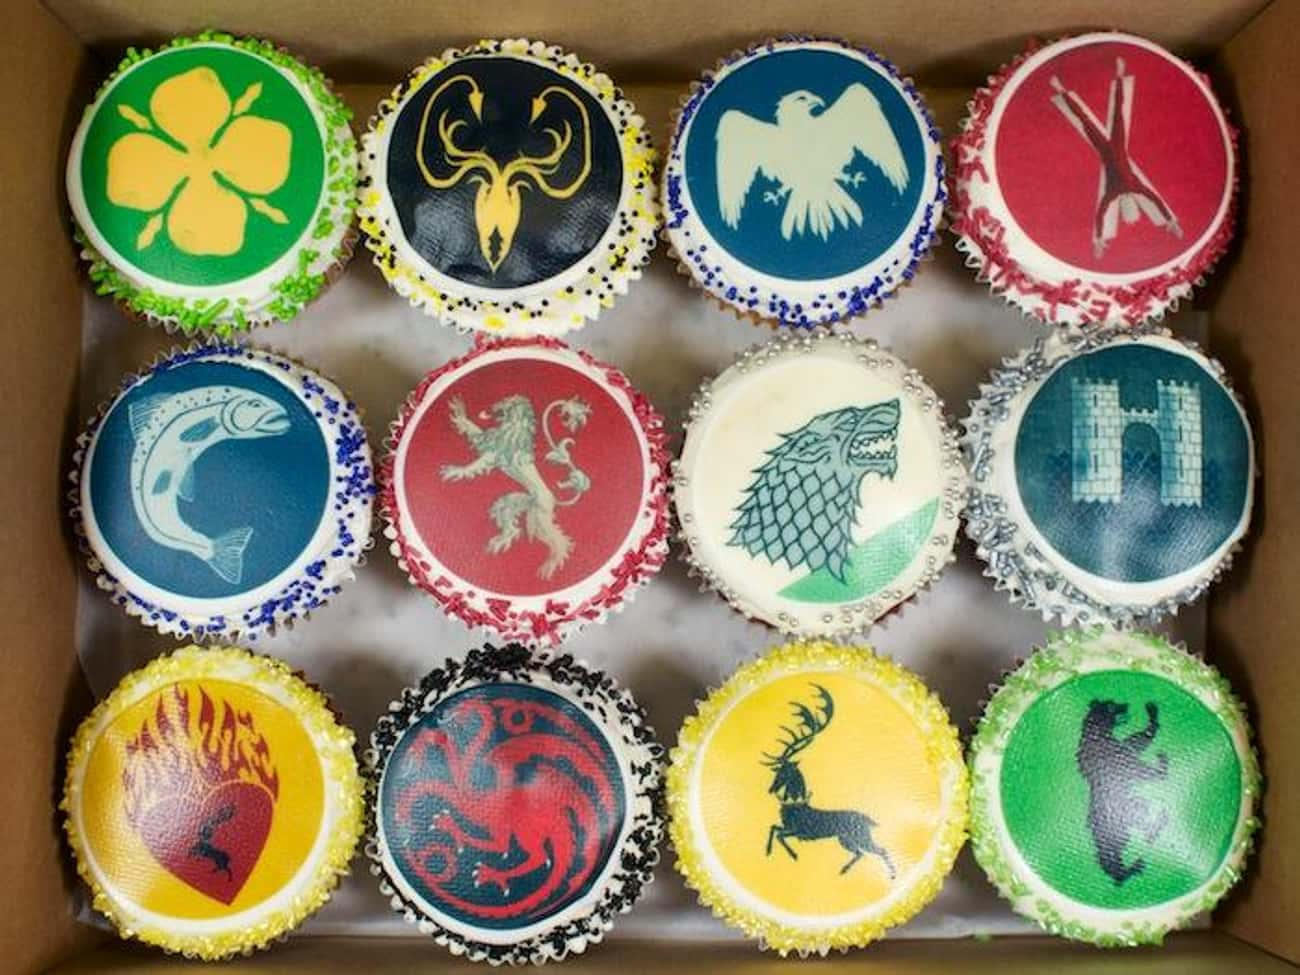 House Sigil Cupcakes is listed (or ranked) 1 on the list 25 Game Of Thrones Cakes Just Waiting To Get Cut